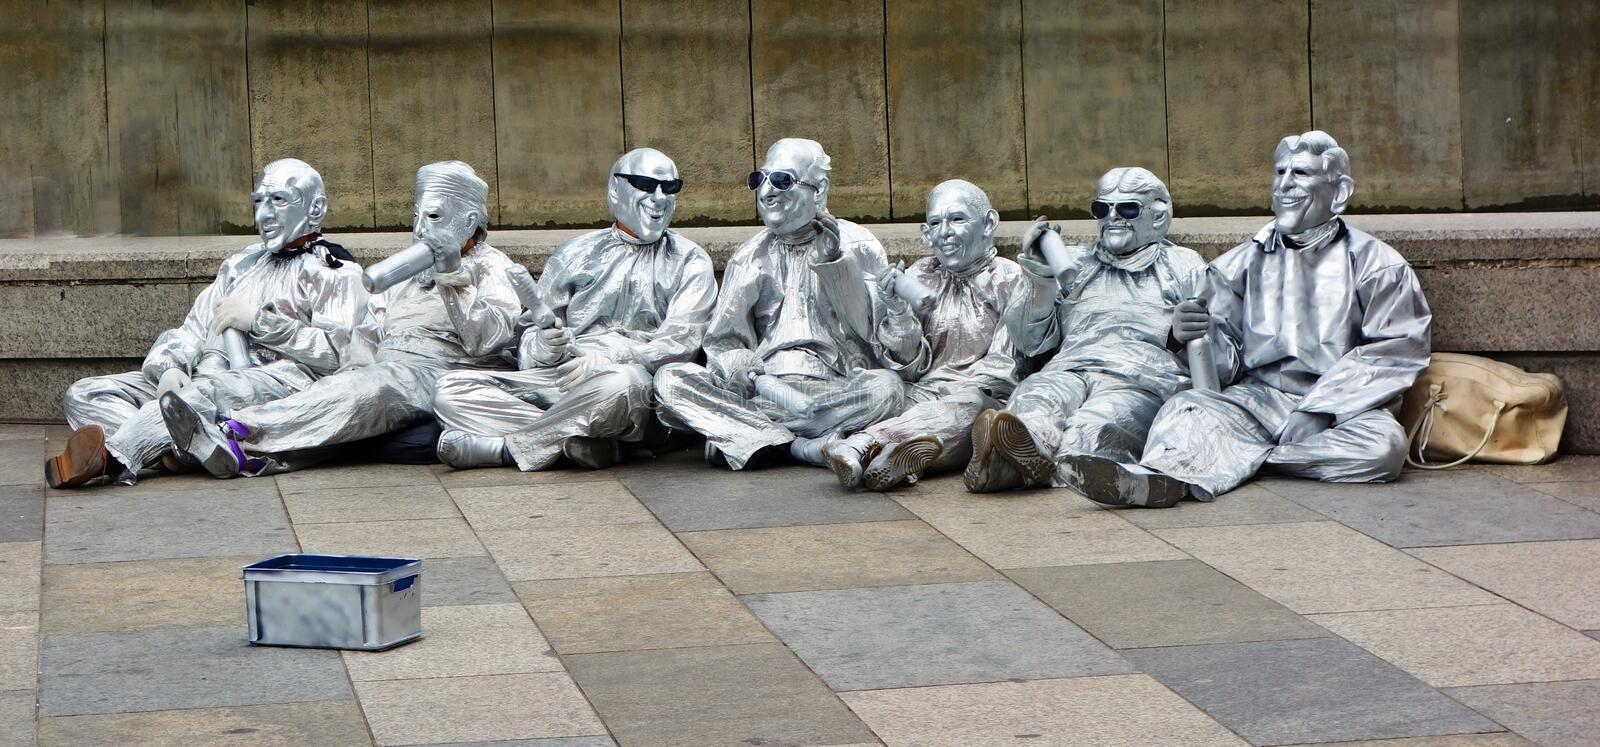 Street perfomance. A group of silvery costumed artists siiting motionless on the ground , begging for money. Ohoto was taken in august 2013 royalty free stock photo